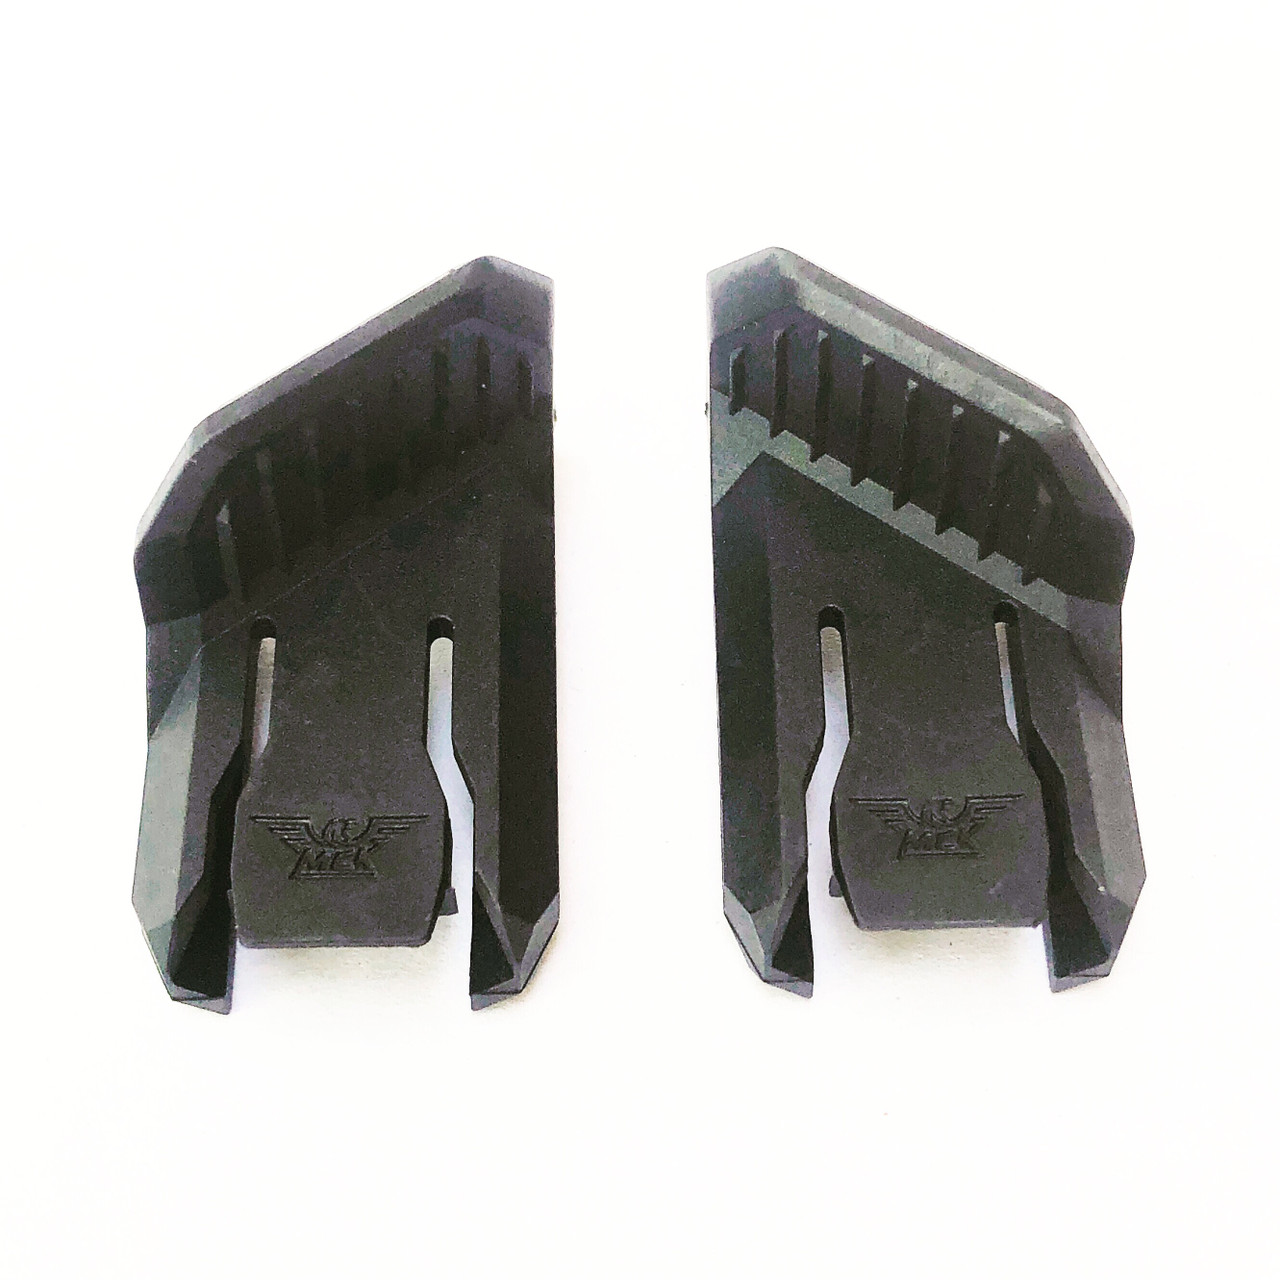 MCK Micro Conversion Kit thumb rests in black.